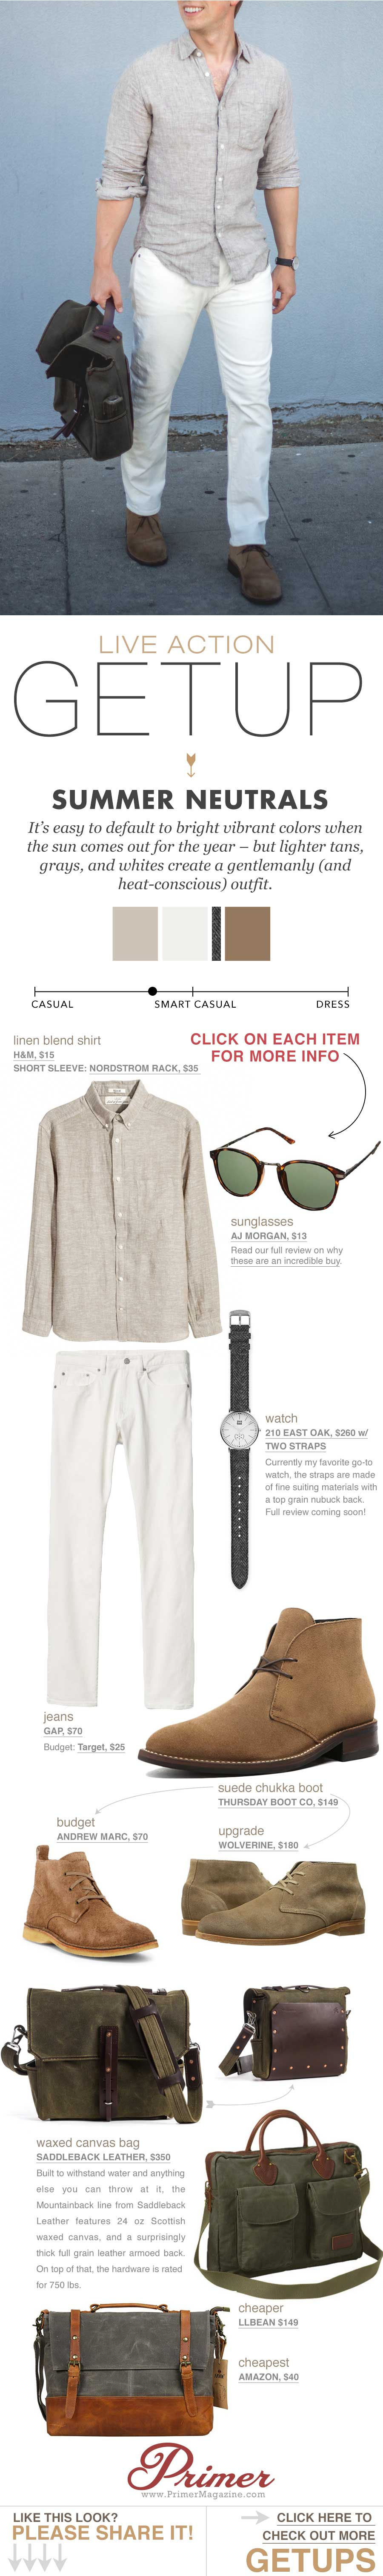 summer outfit getups